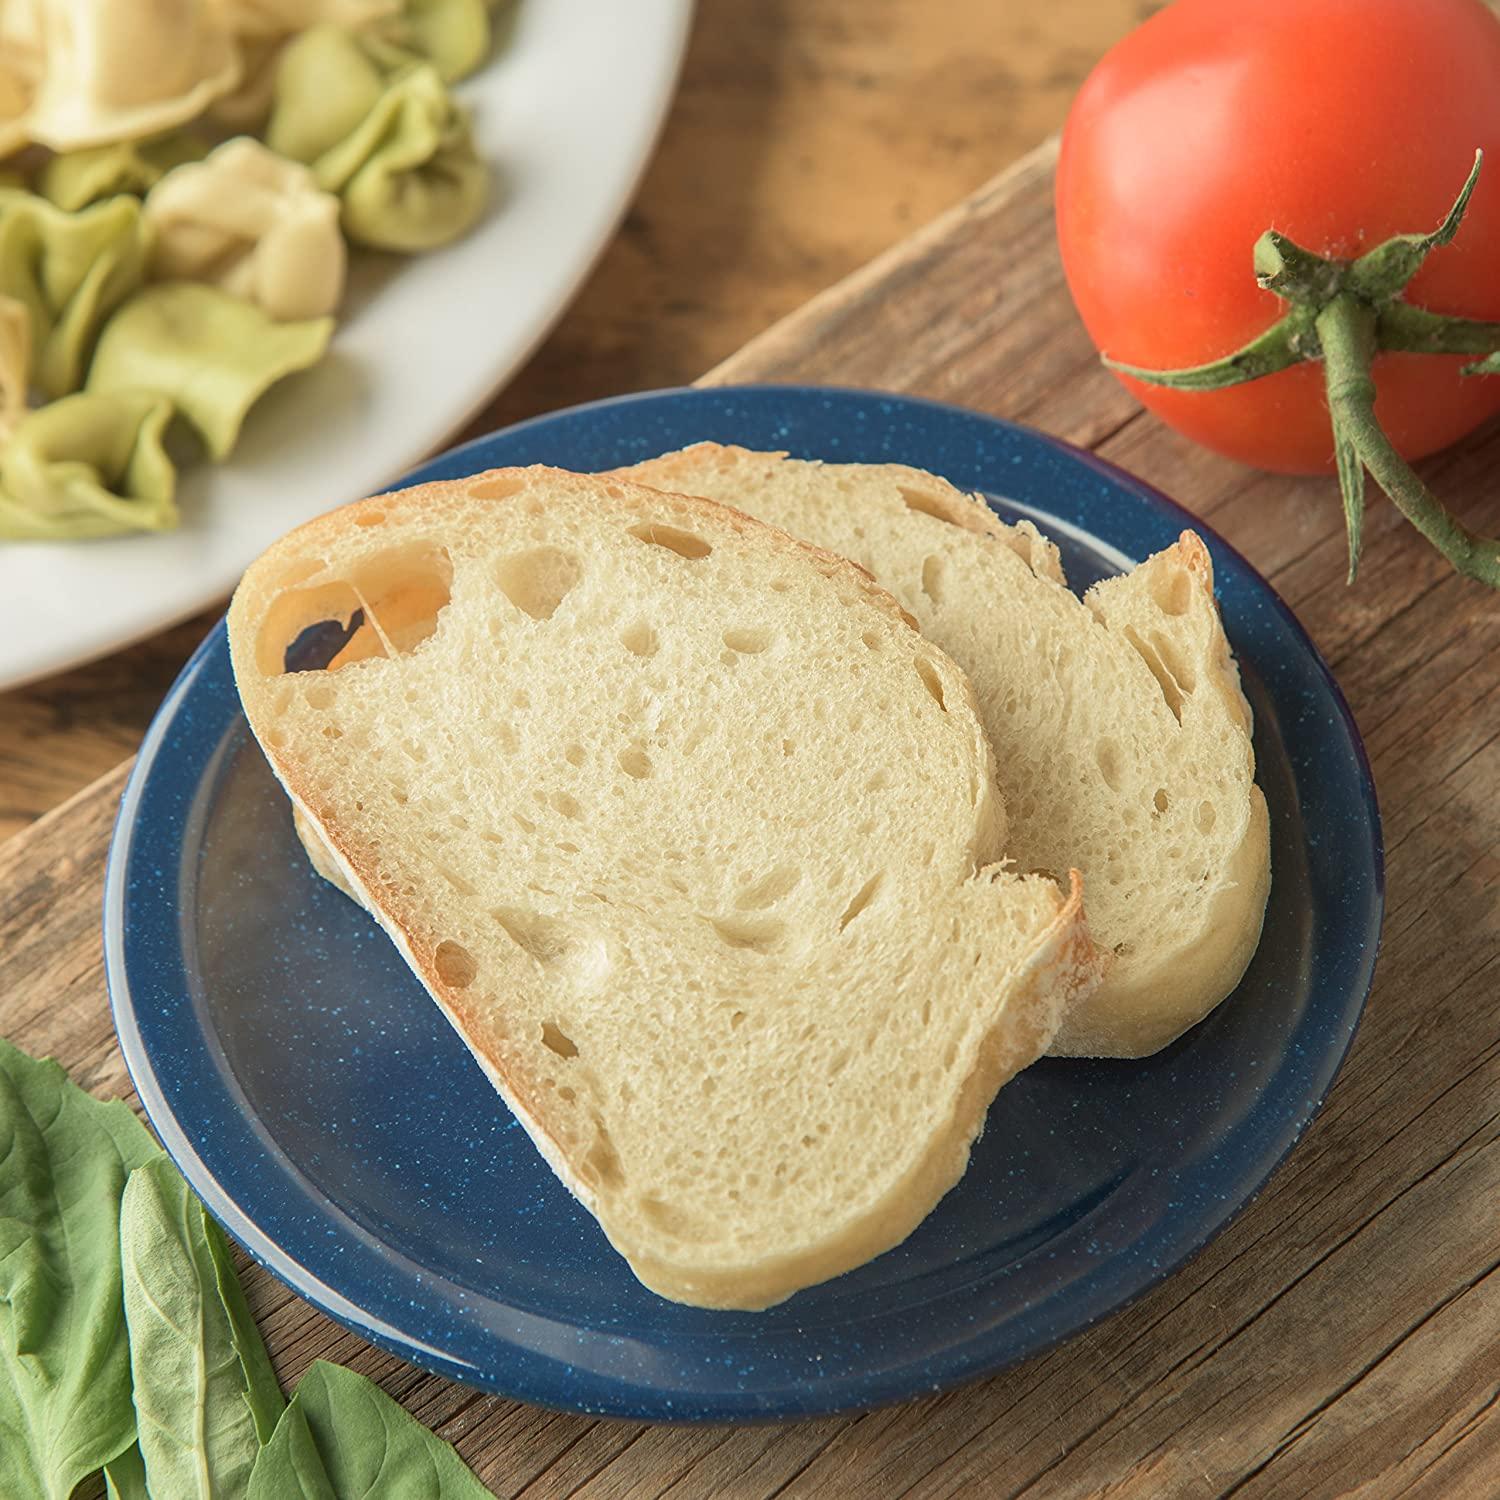 Case of 48 Carlisle 4350535 Dallas Ware Melamine Bread and Butter Plate Cafe Blue 0.66 x 5.58 Carlisle FoodService Products 43505-35 0.66 x 5.58